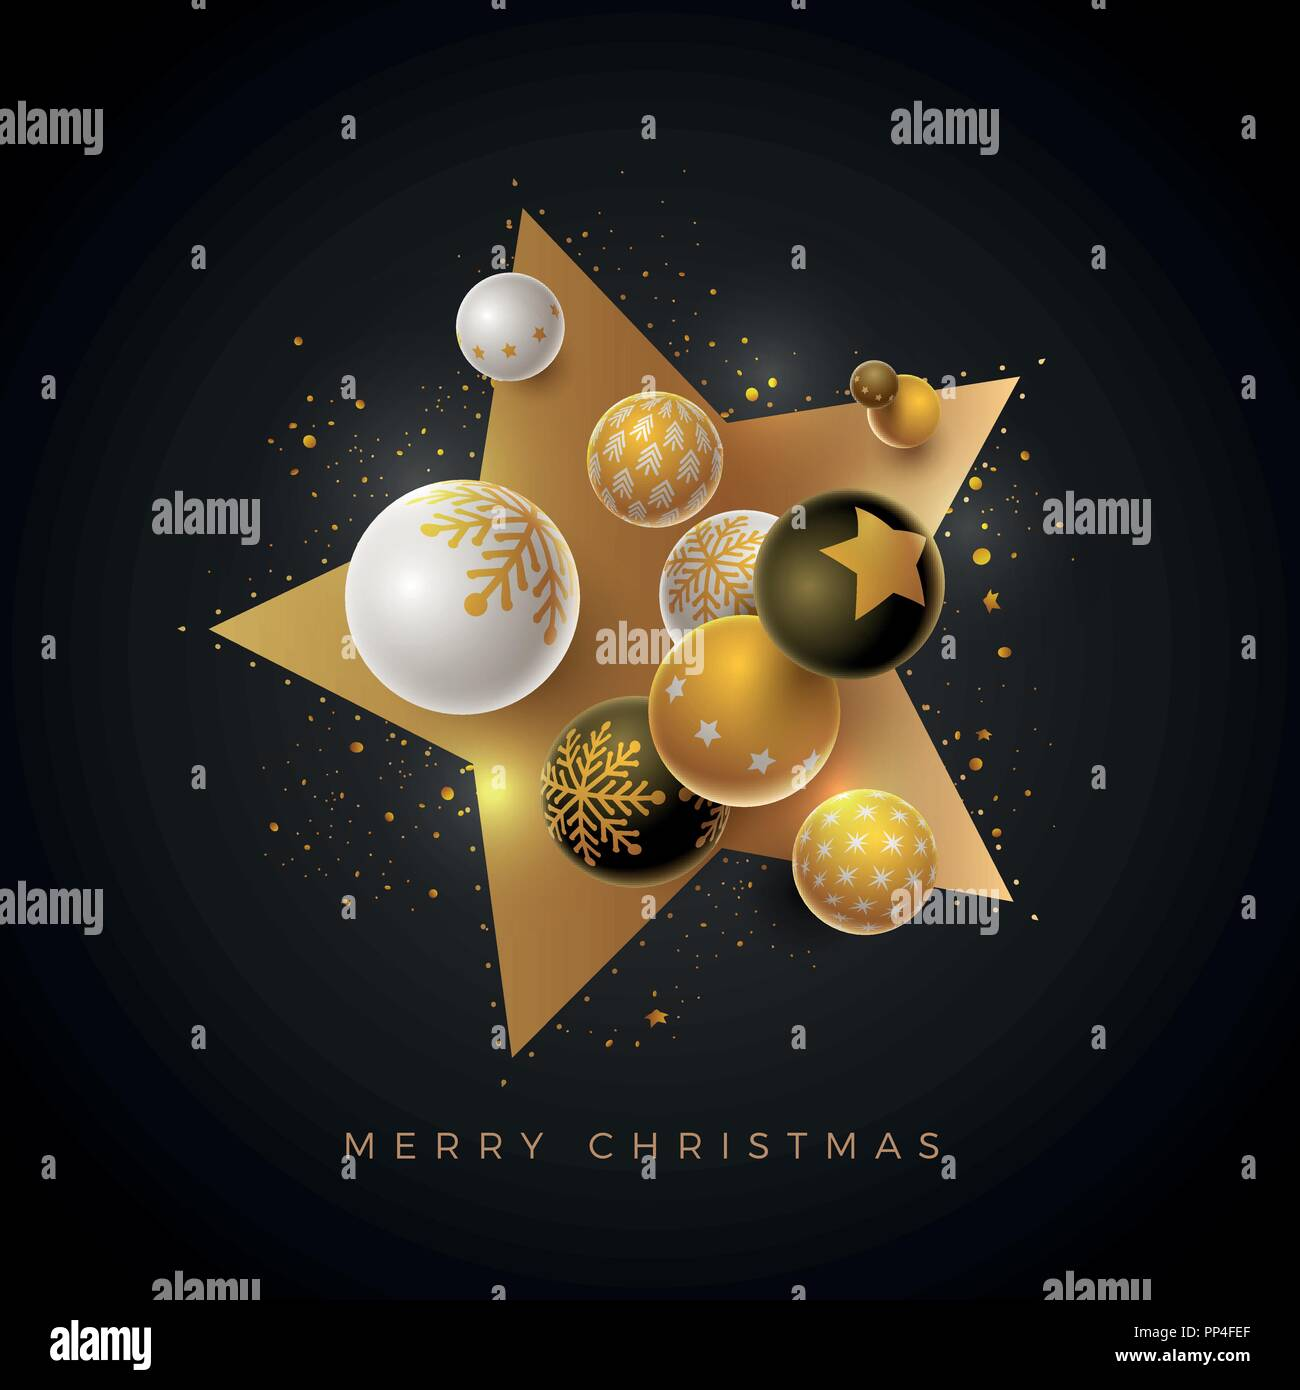 Abstract Christmas And New Year Greeting Card Design With 3d White